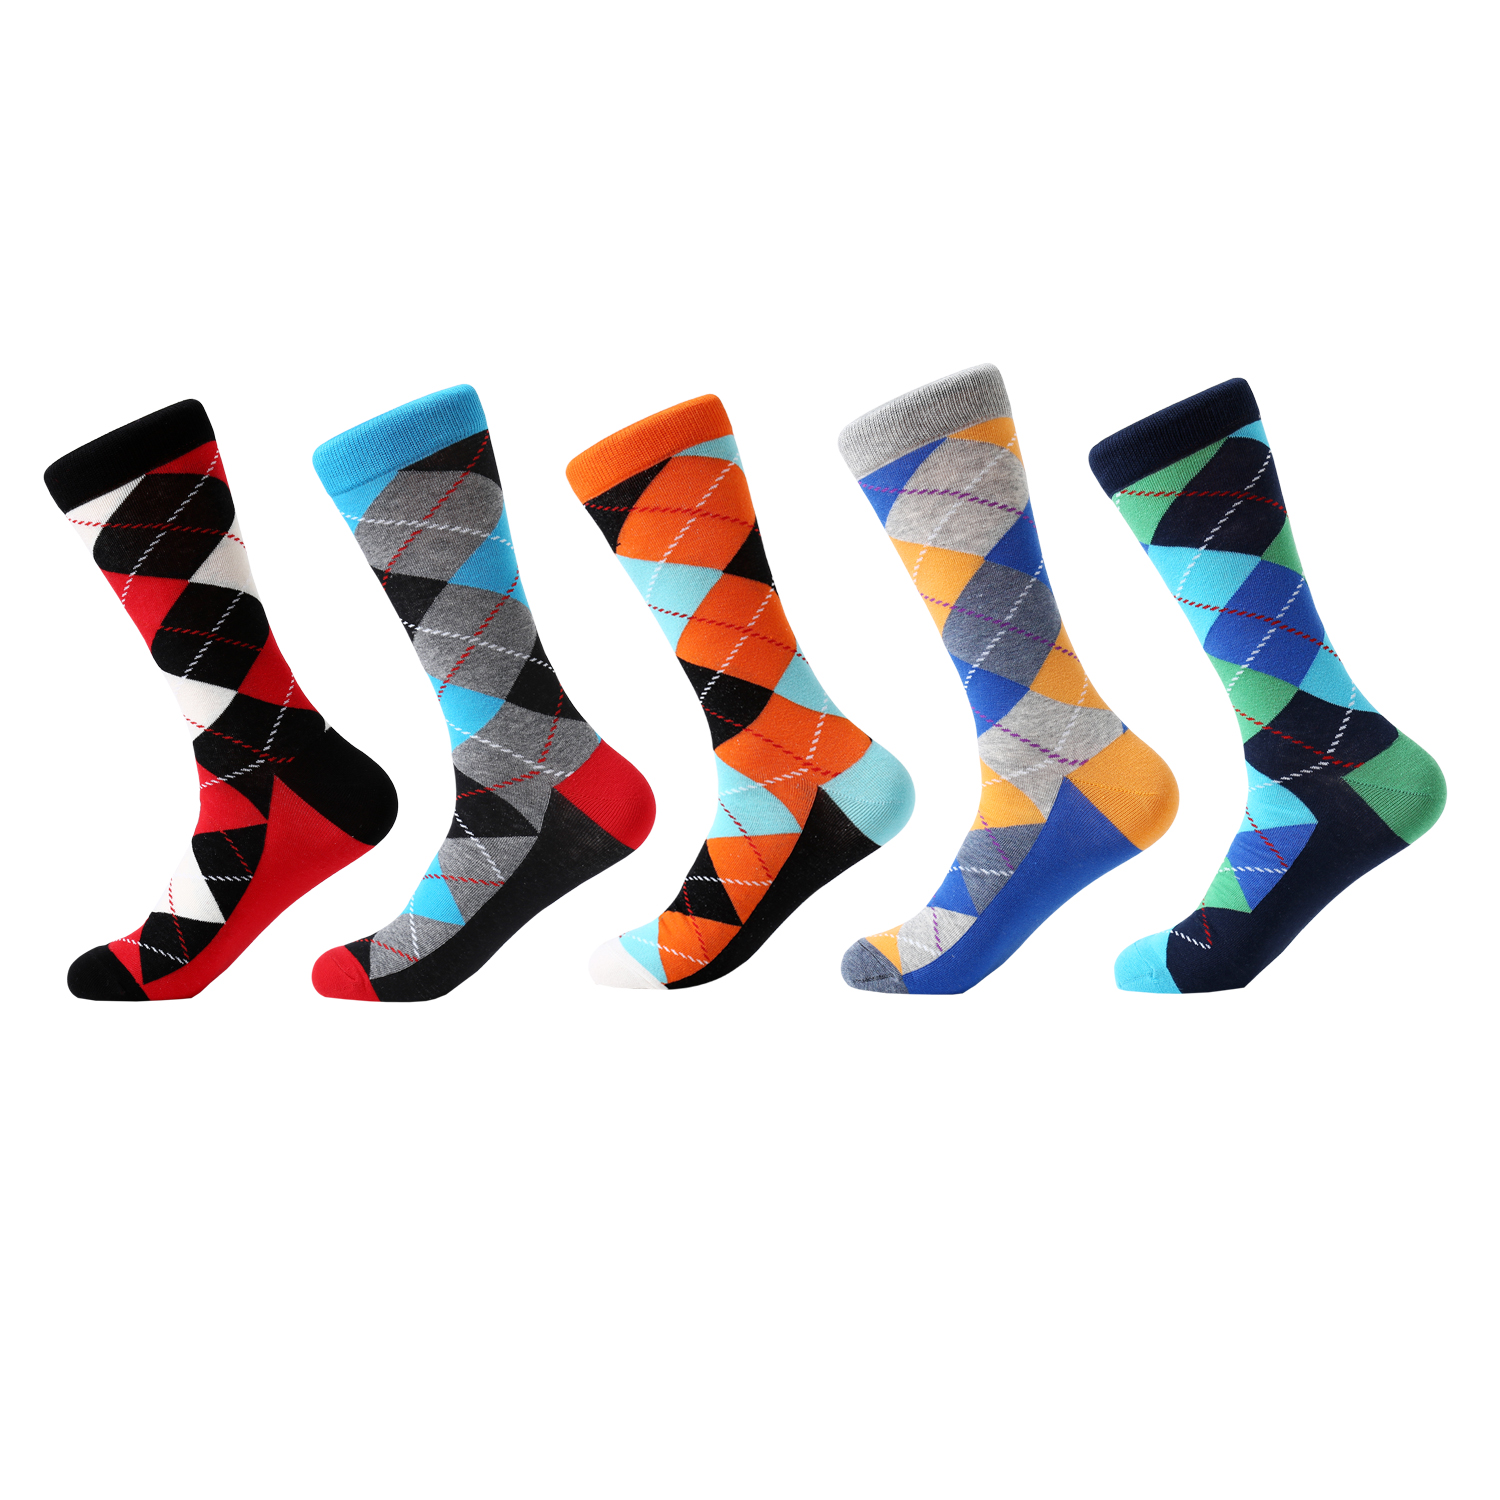 LETSBUY 5 pair/lot mens socks cotton diamond geometric pattern colorful funny socks long tube for men casual business dress soc